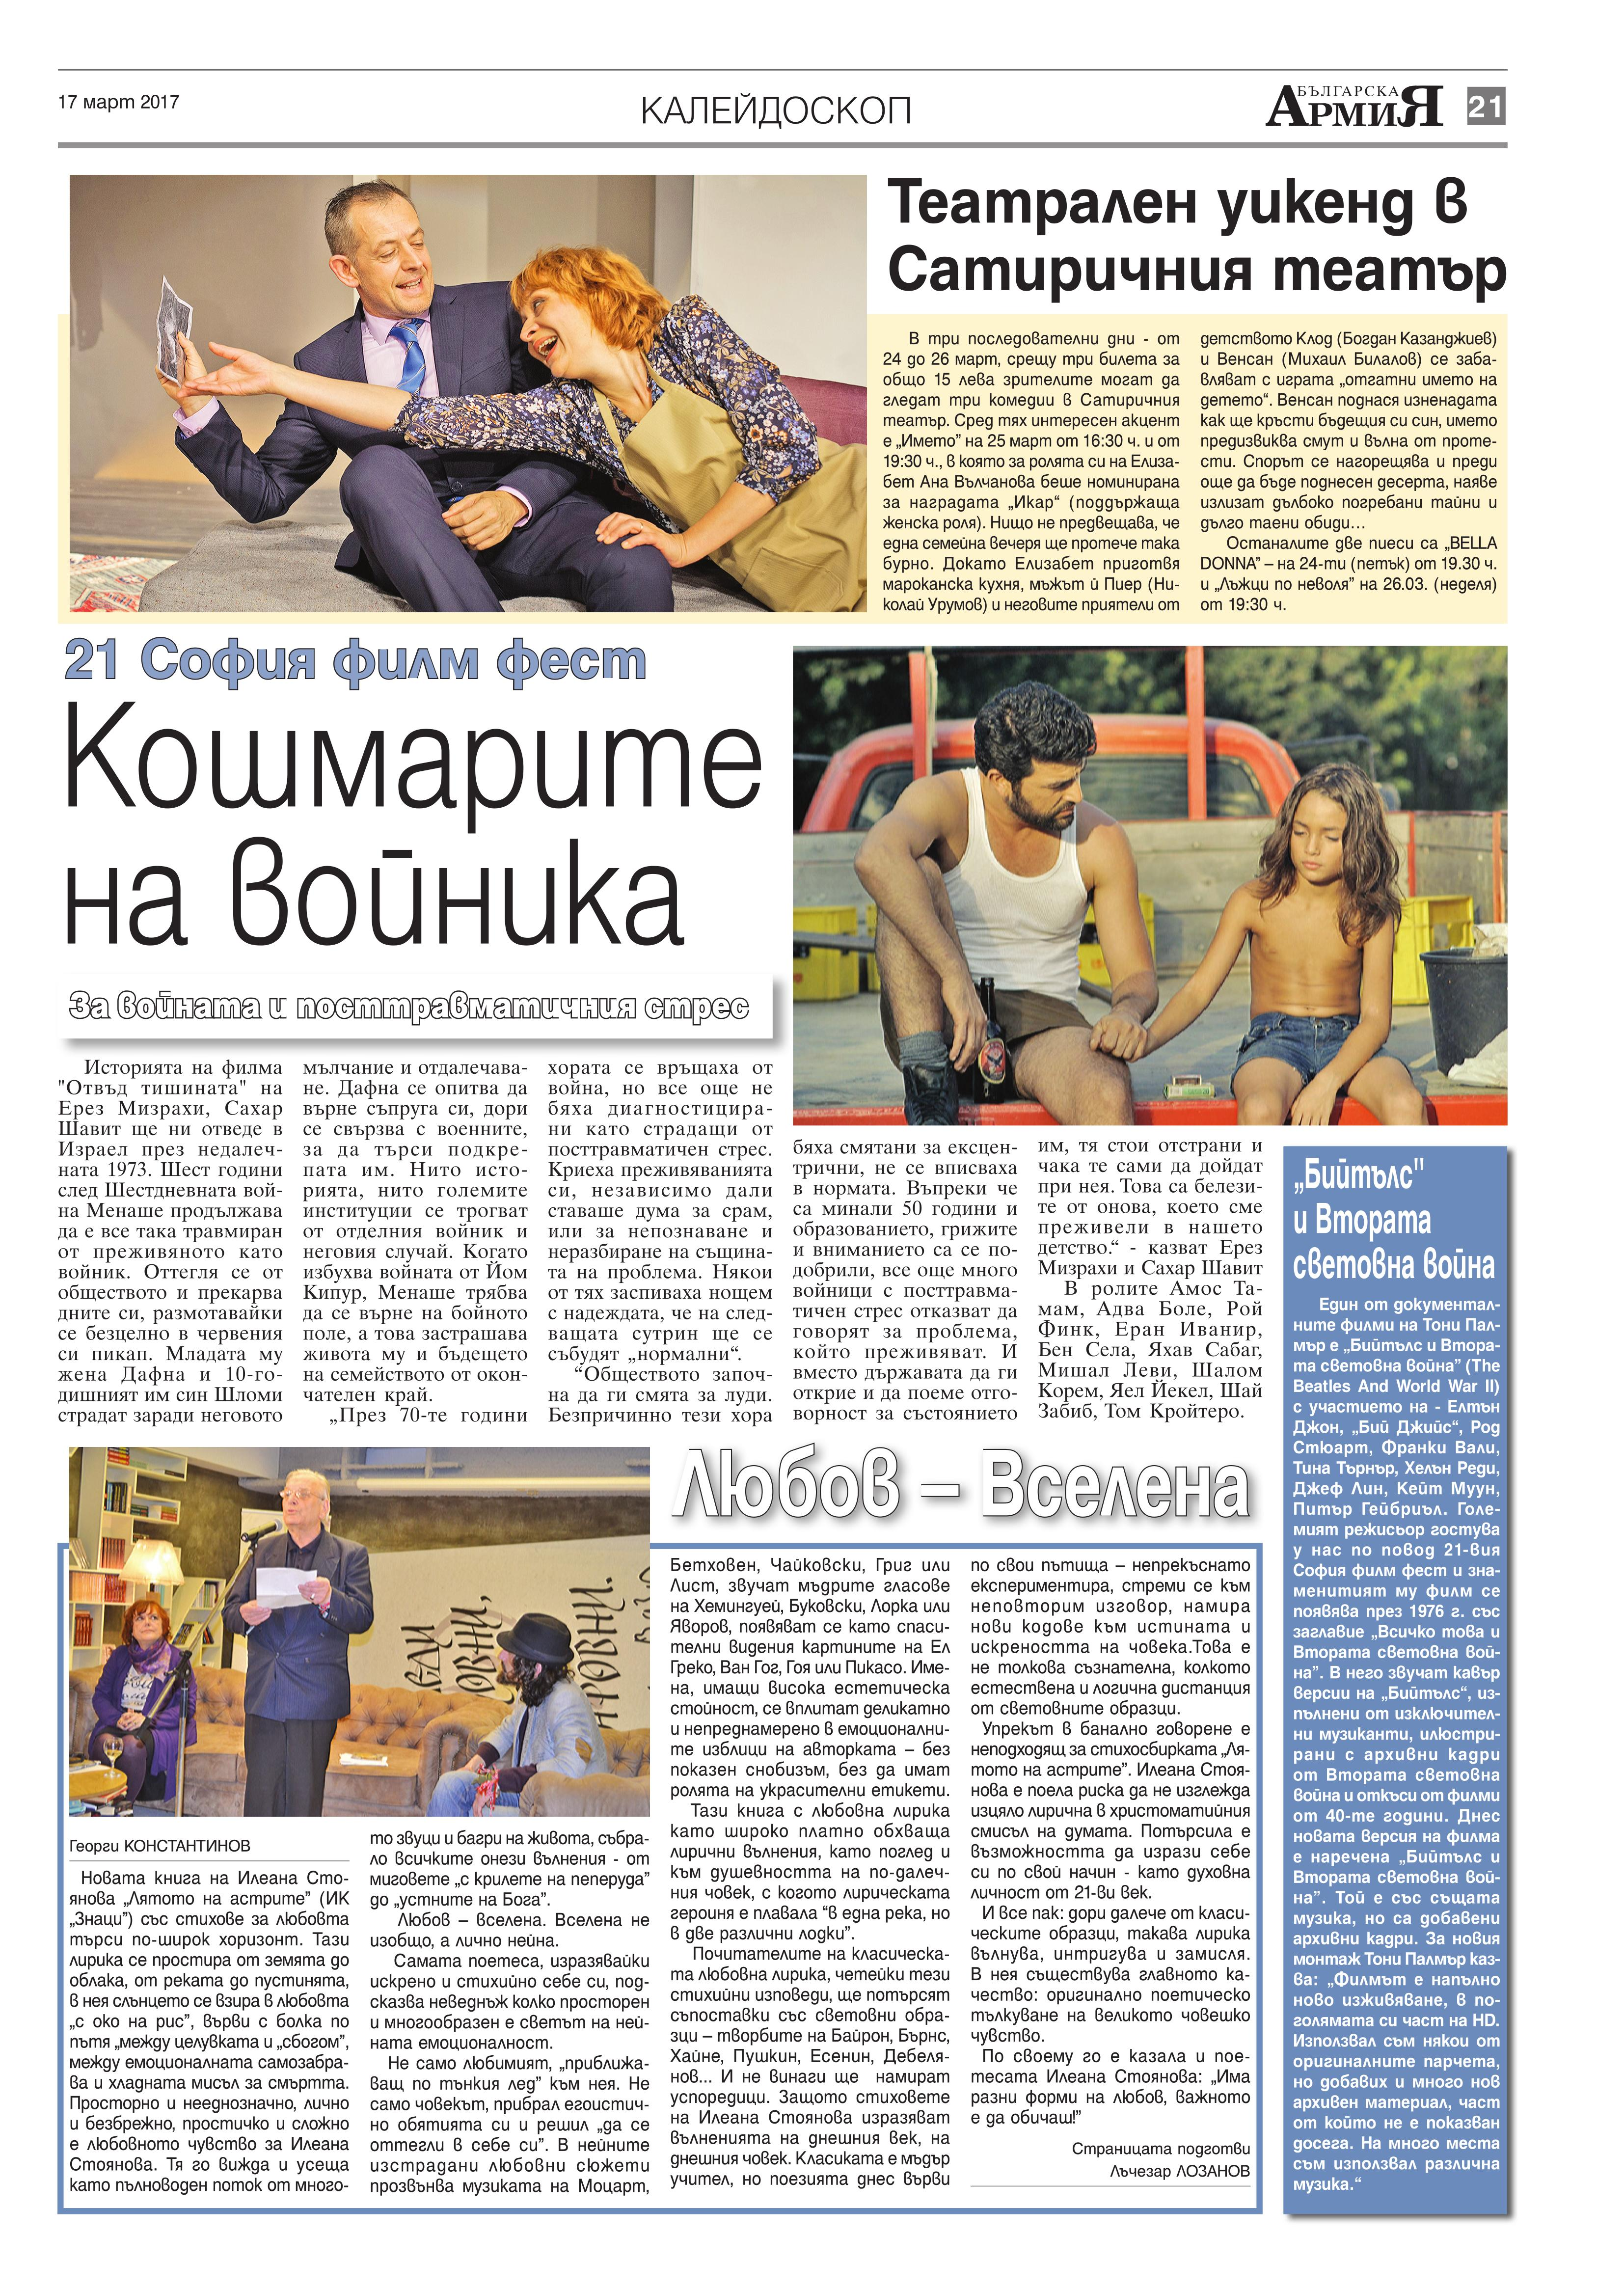 https://www.armymedia.bg/wp-content/uploads/2015/06/21.page1_-17.jpg